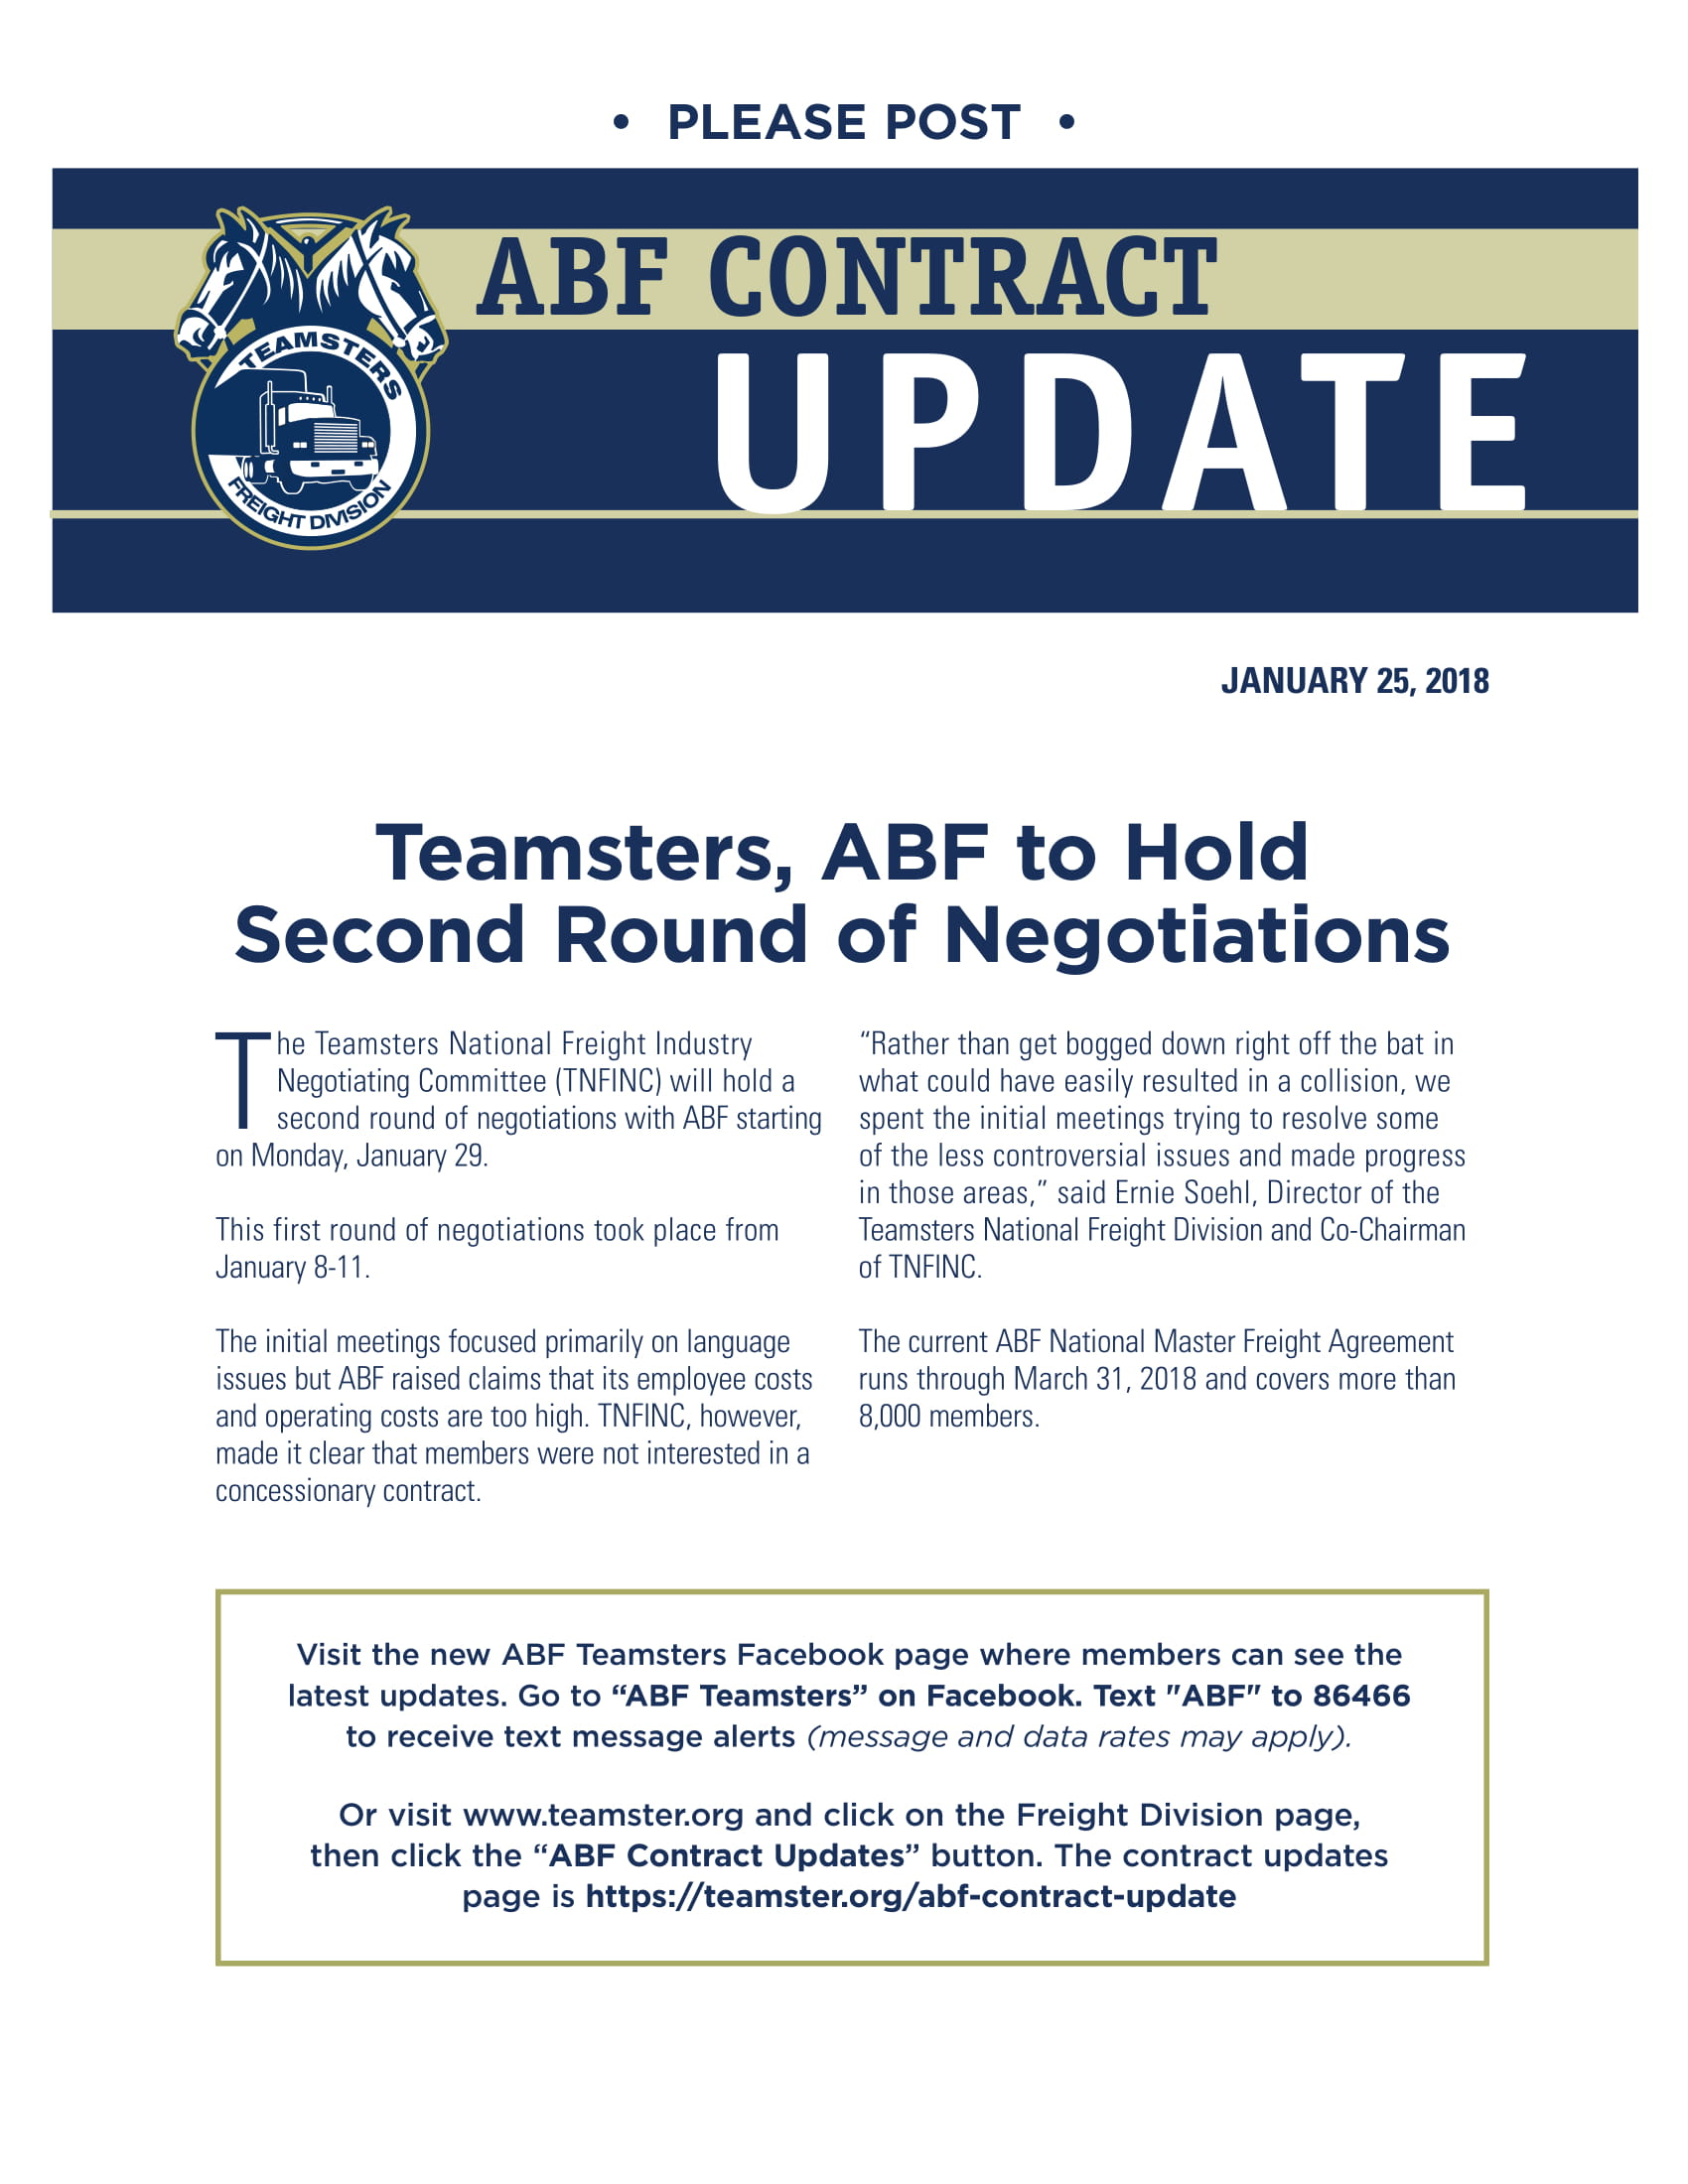 Teamsters Local 600